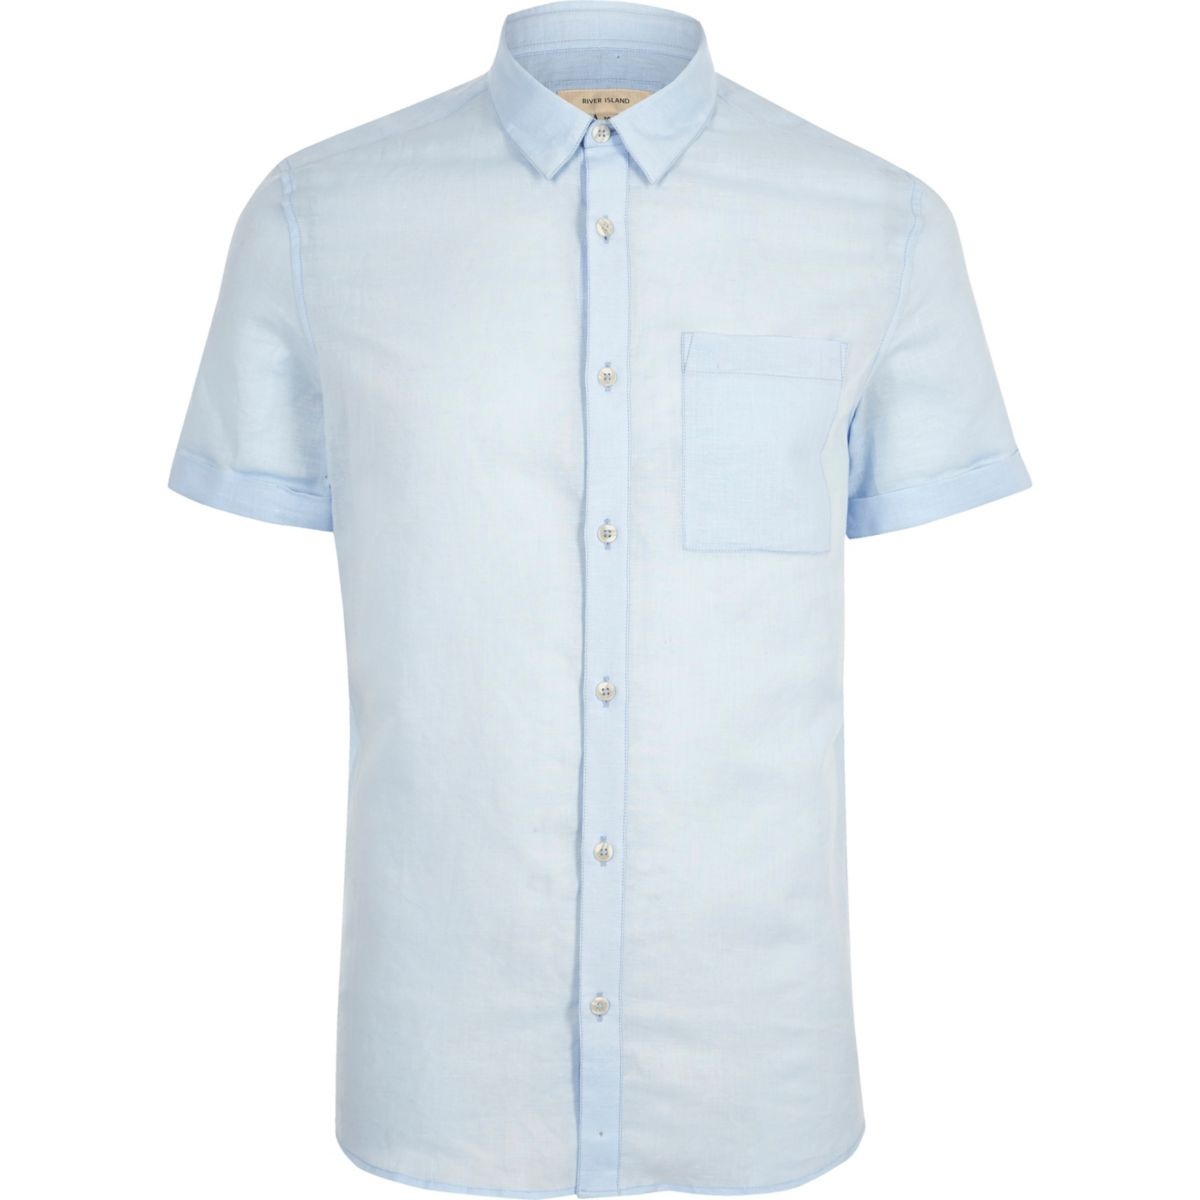 Light blue linen blend short sleeve shirt